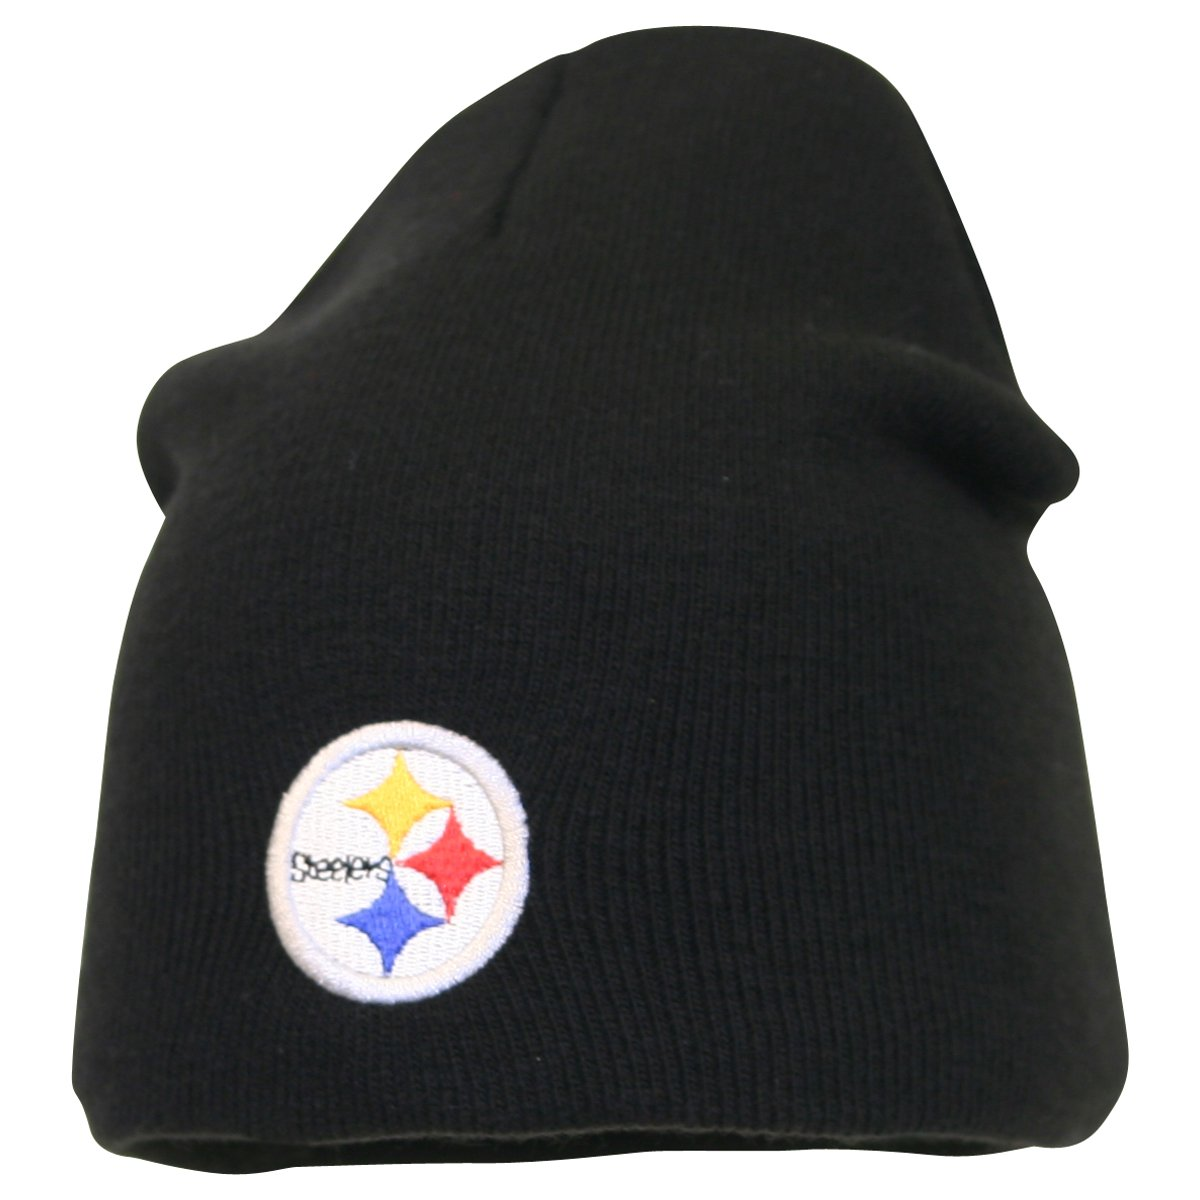 afcfda0a2f6e0 Amazon.com   Pittsburgh Steelers Classic Knit Beanie   Sports Fan Beanies    Clothing